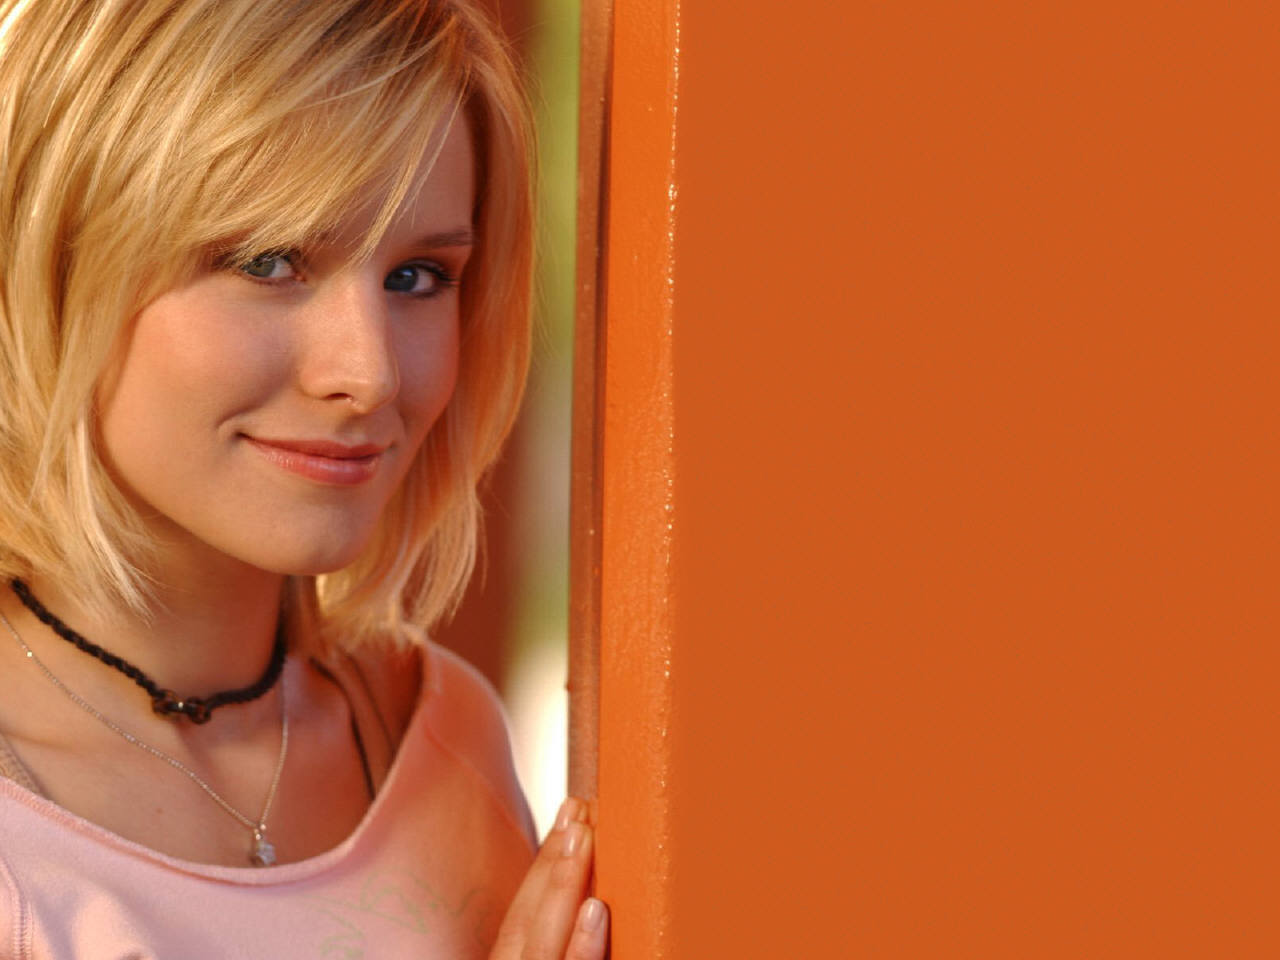 Kristen bell Celebrity HD Wallpaper